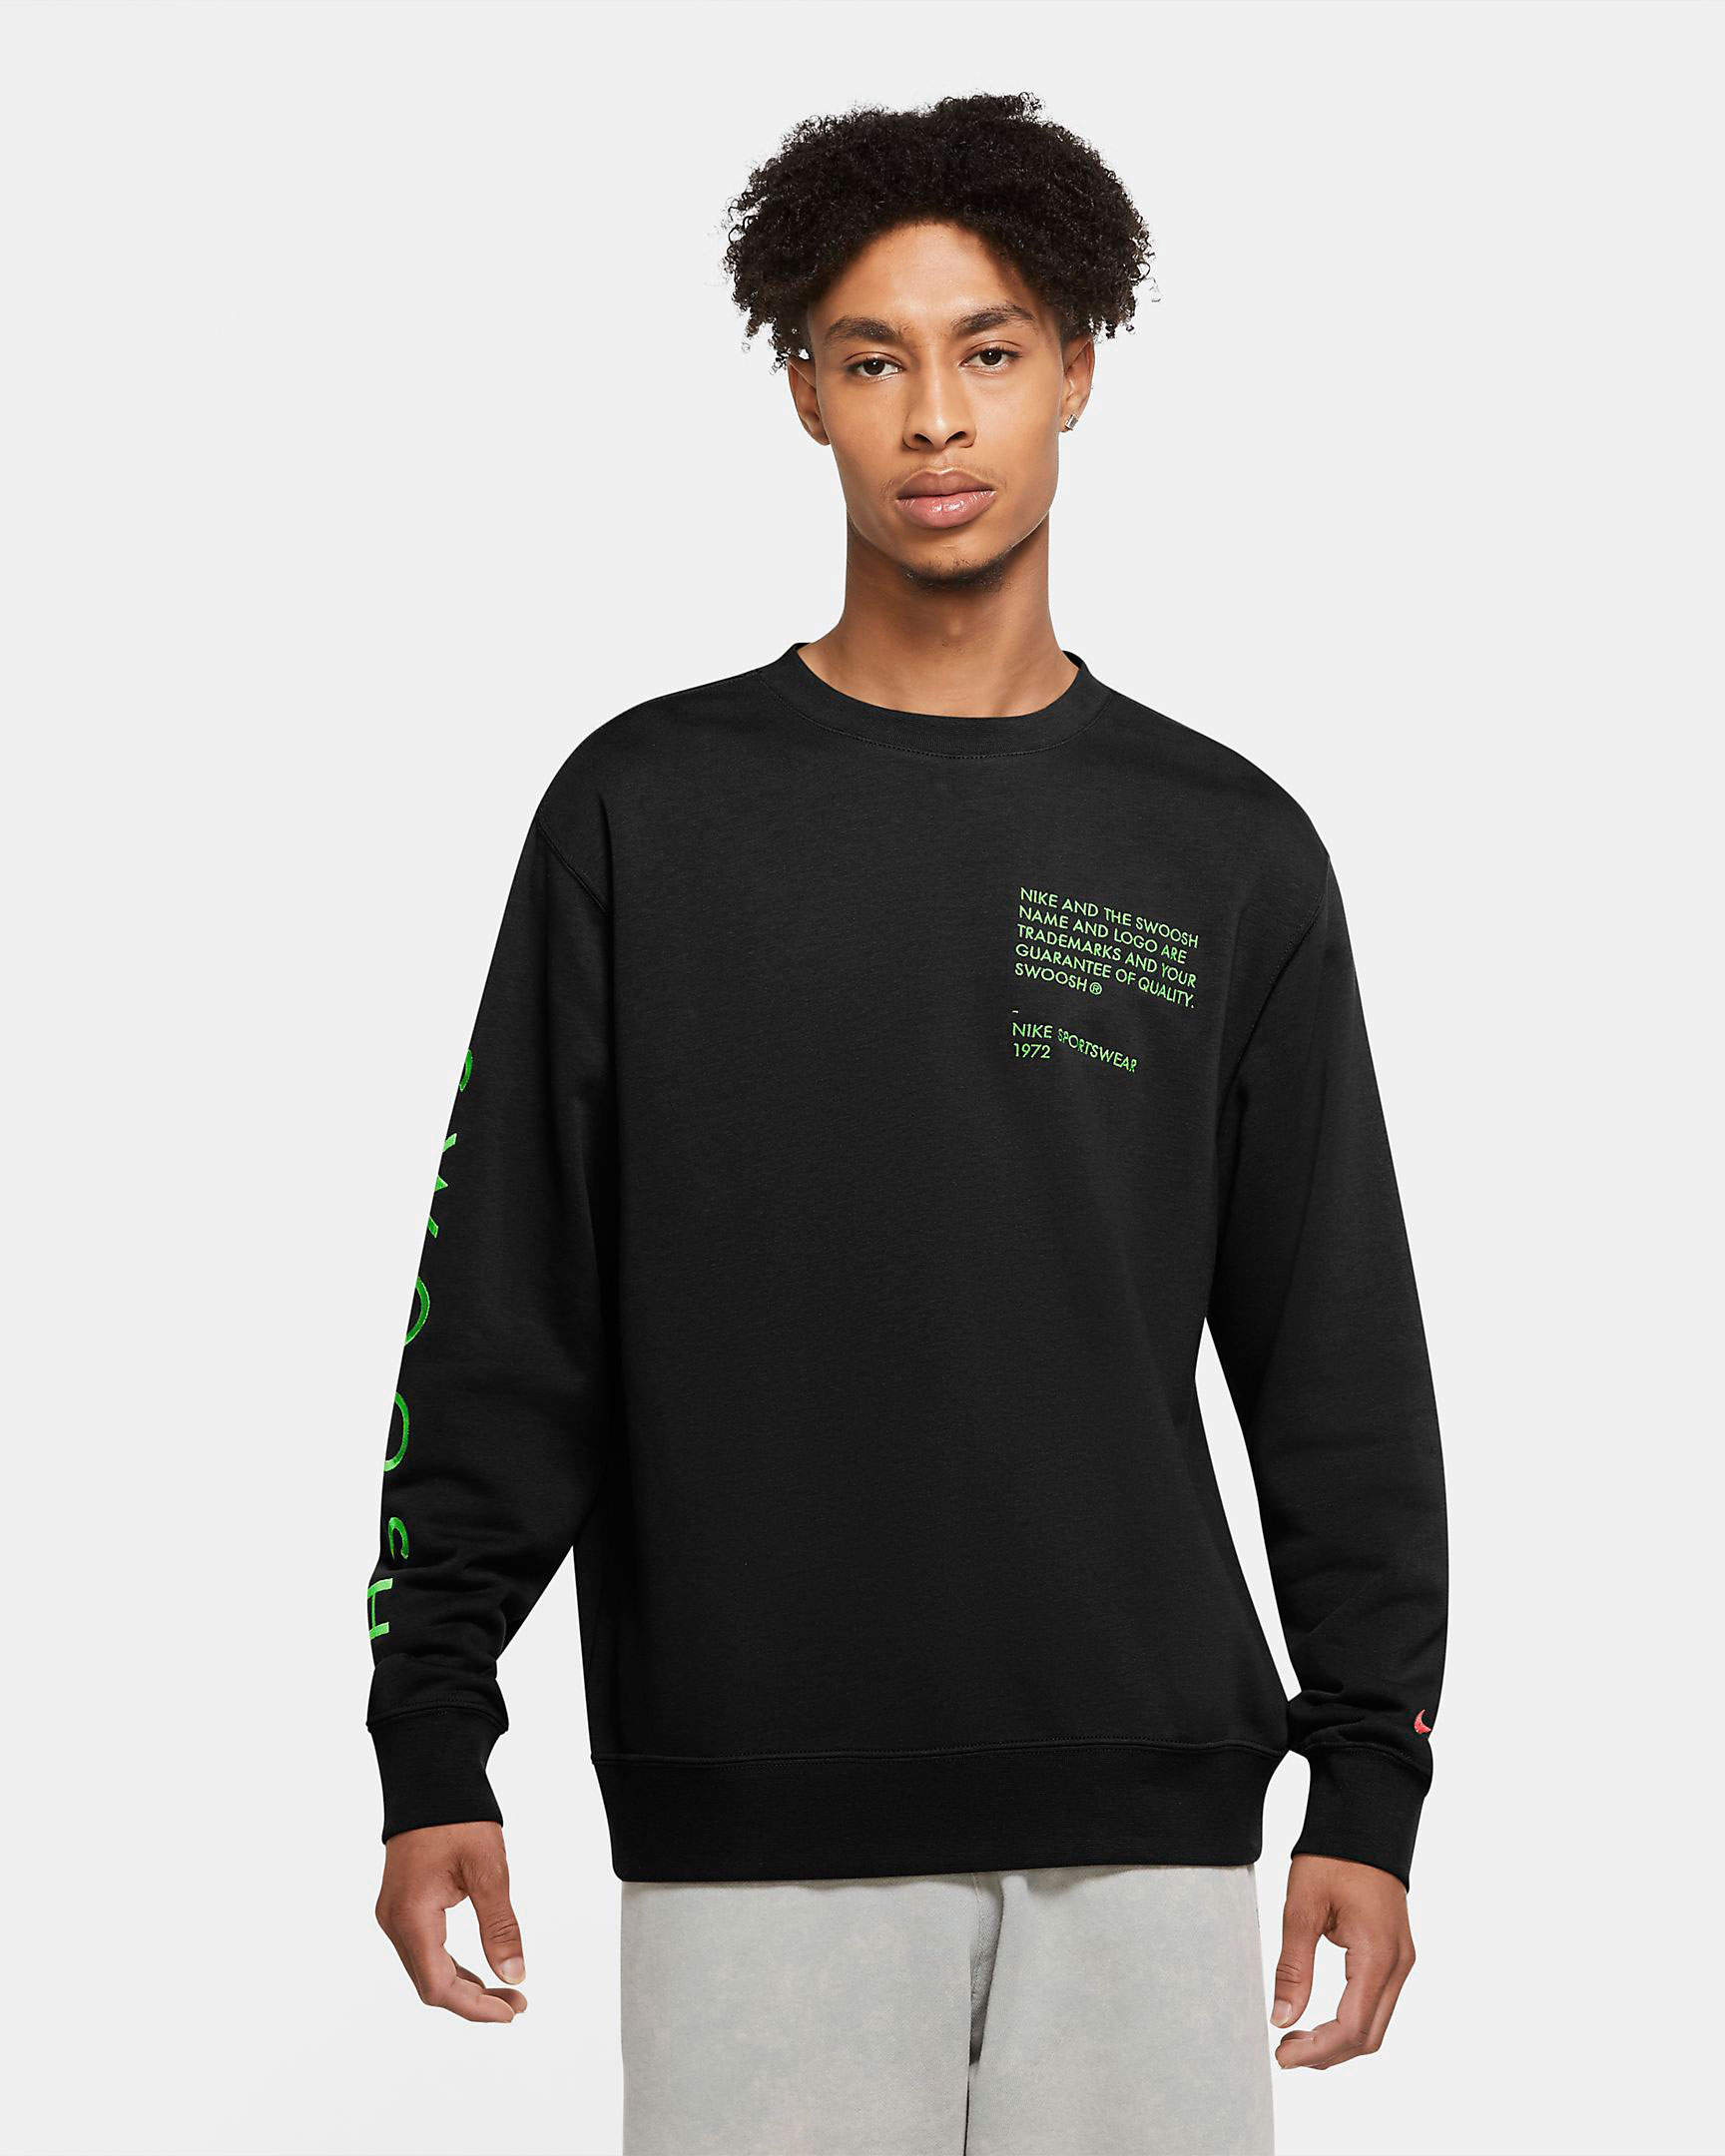 nike-worldwide-sweatshirt-black-green-1